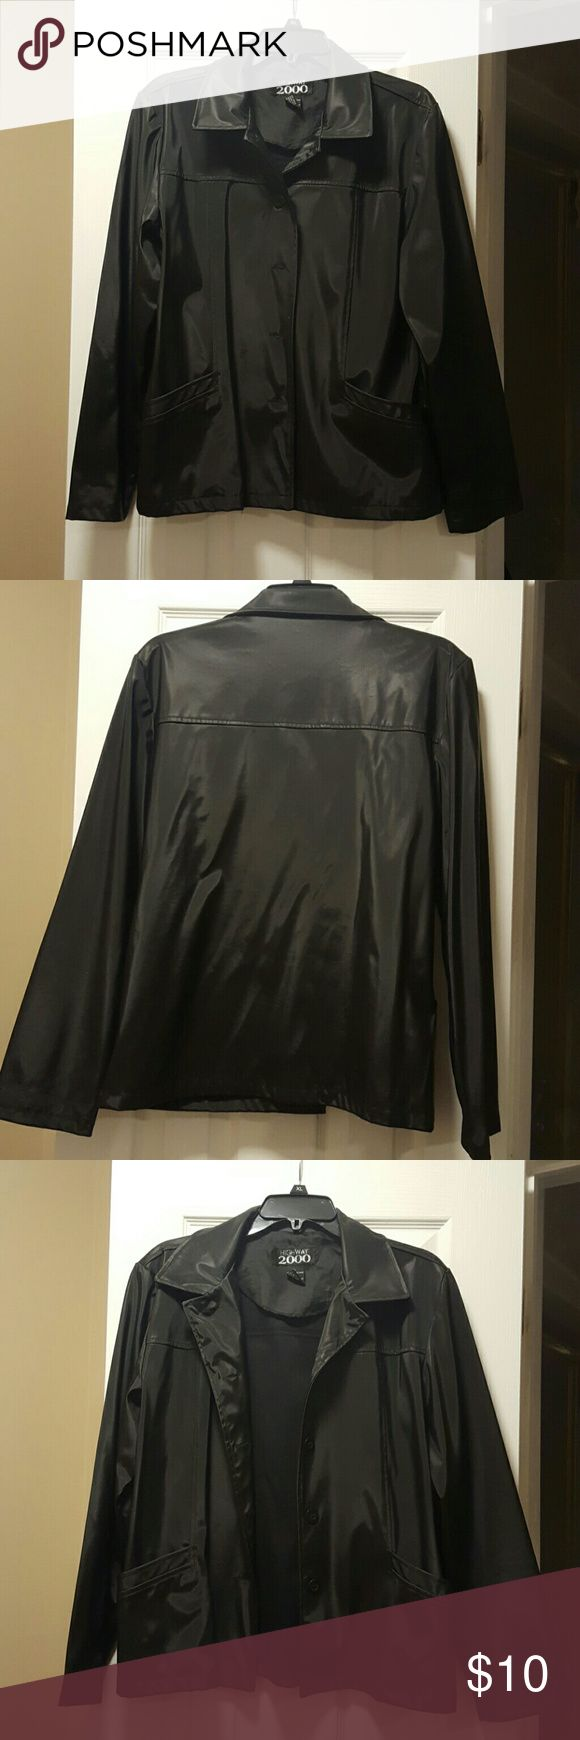 Highway 2000 Rain Jacket 100% Polyurethane Highway 2000 Rain Jacket..with pockets on both sides and 5 button closures in front will Def keep you dry while still being stylish Highway 2000 Jackets & Coats